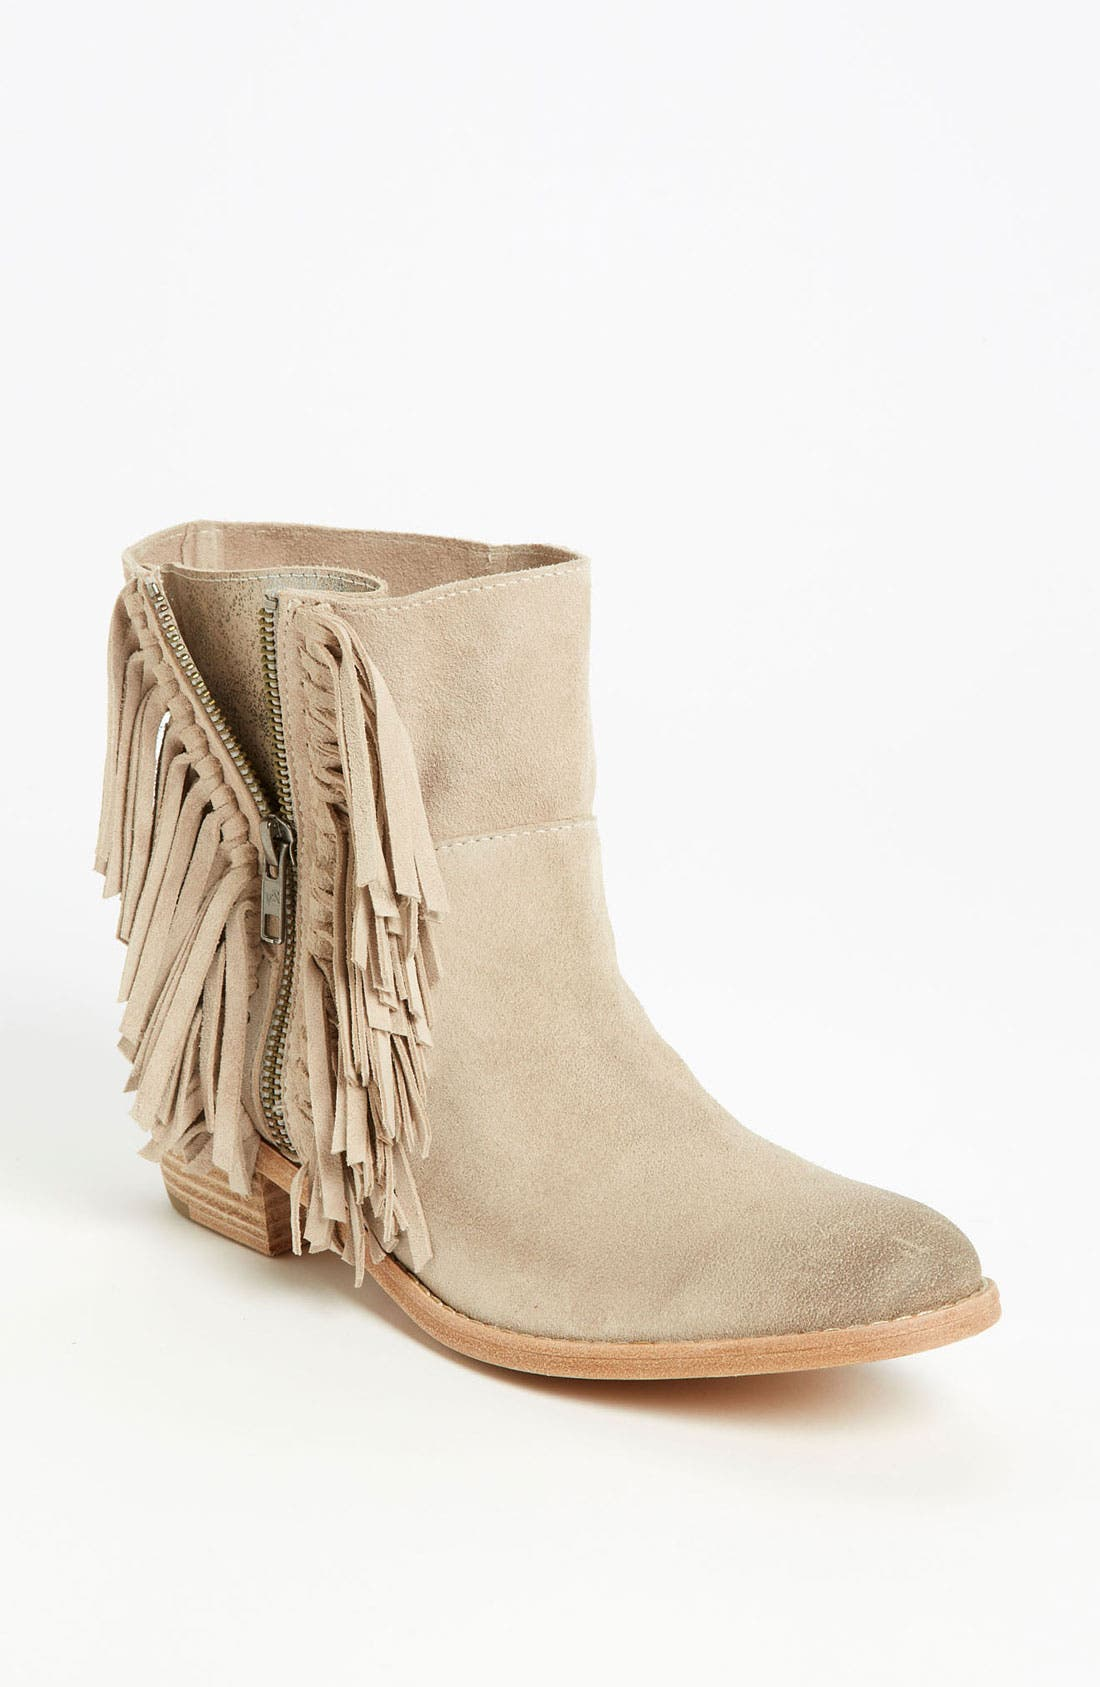 Alternate Image 1 Selected - Zadig & Voltaire 'Pearce' Short Boot